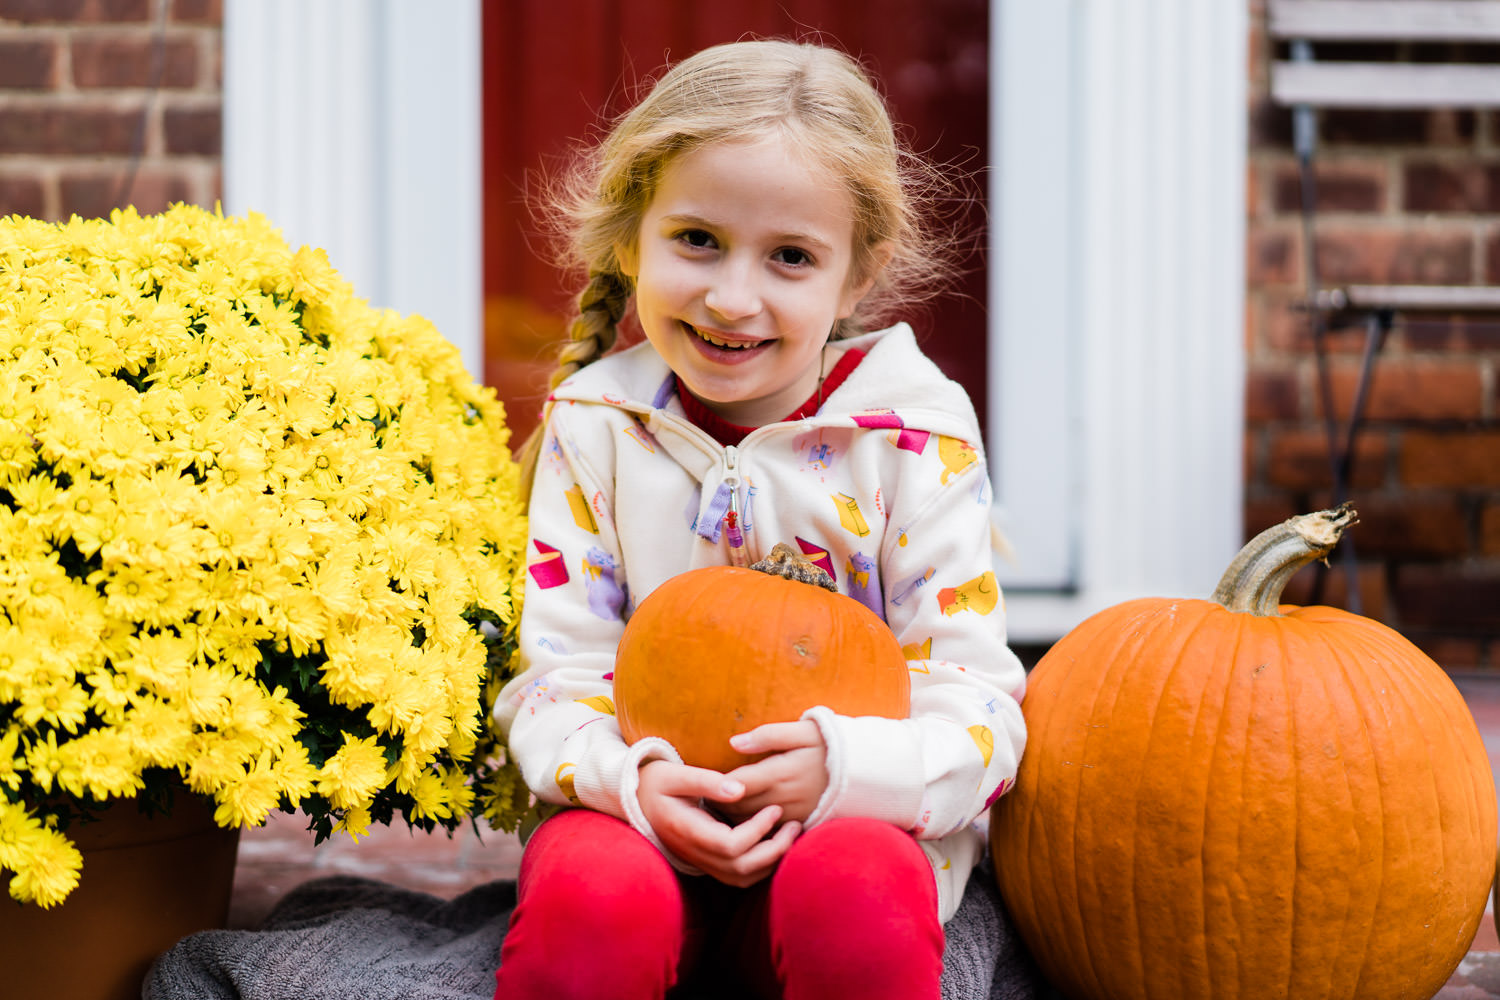 A little girl sits on her porch with some pumpkins.